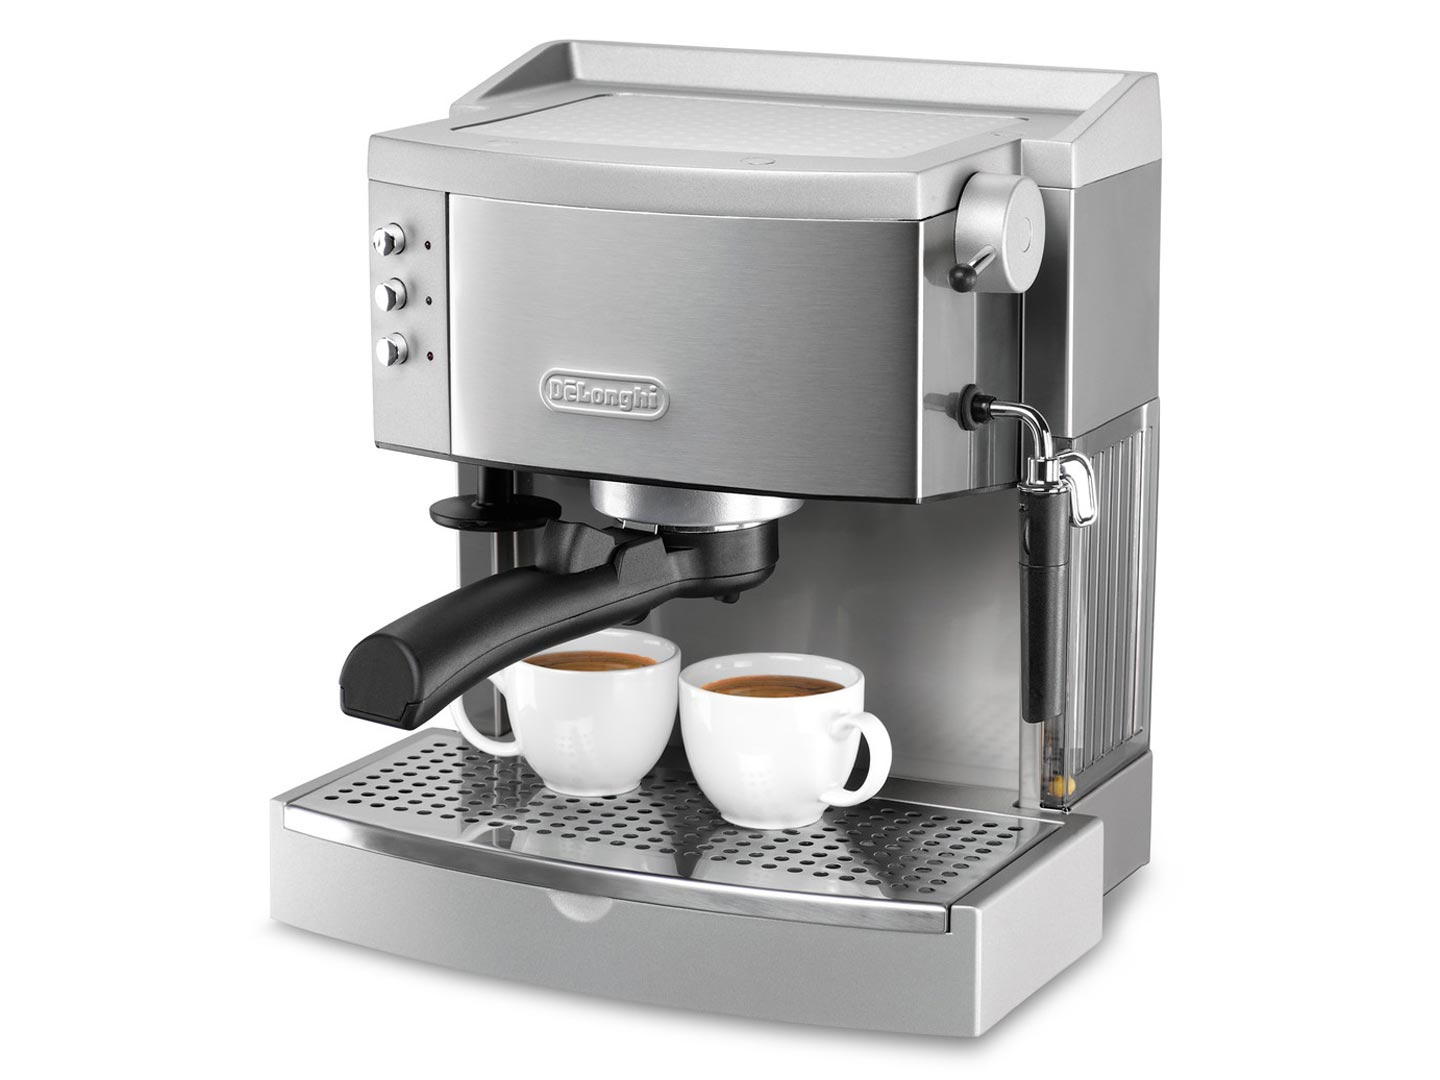 How Do You Say Coffee Maker In Italian : DeLonghi EC702 15-Bar-Pump Espresso Maker Review TechLogitic